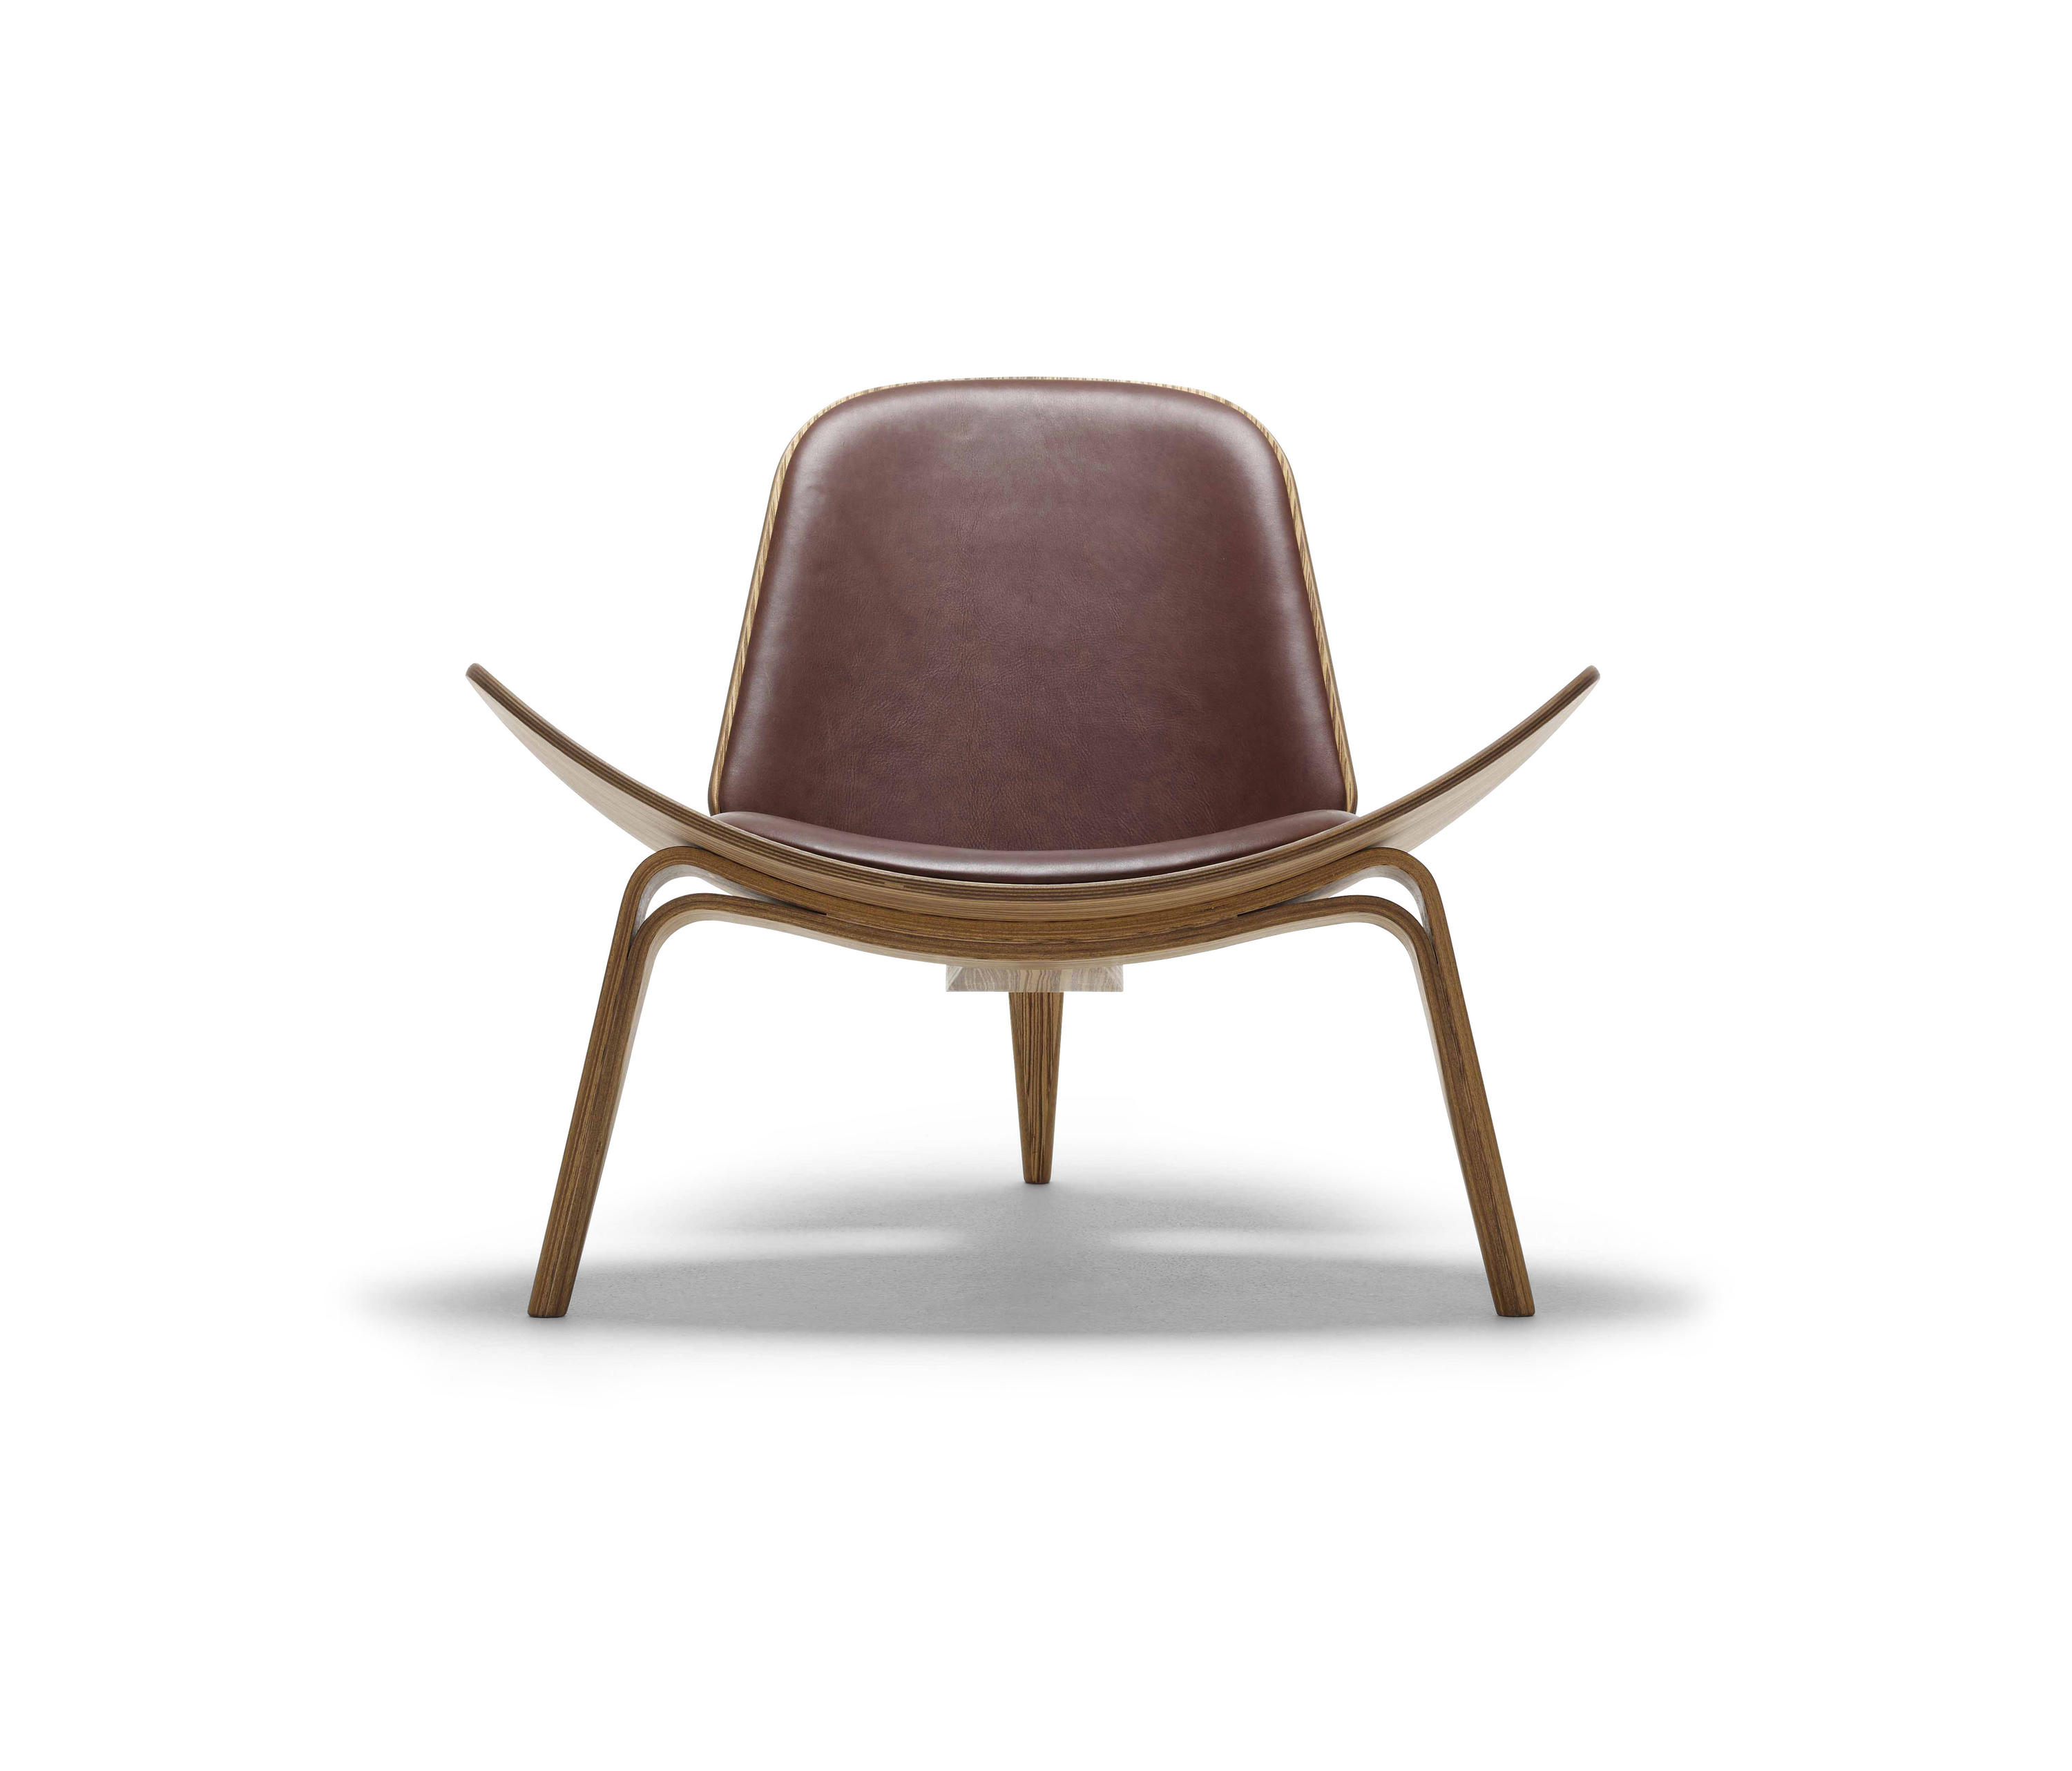 ch07 shell chair armchairs from carl hansen søn architonic